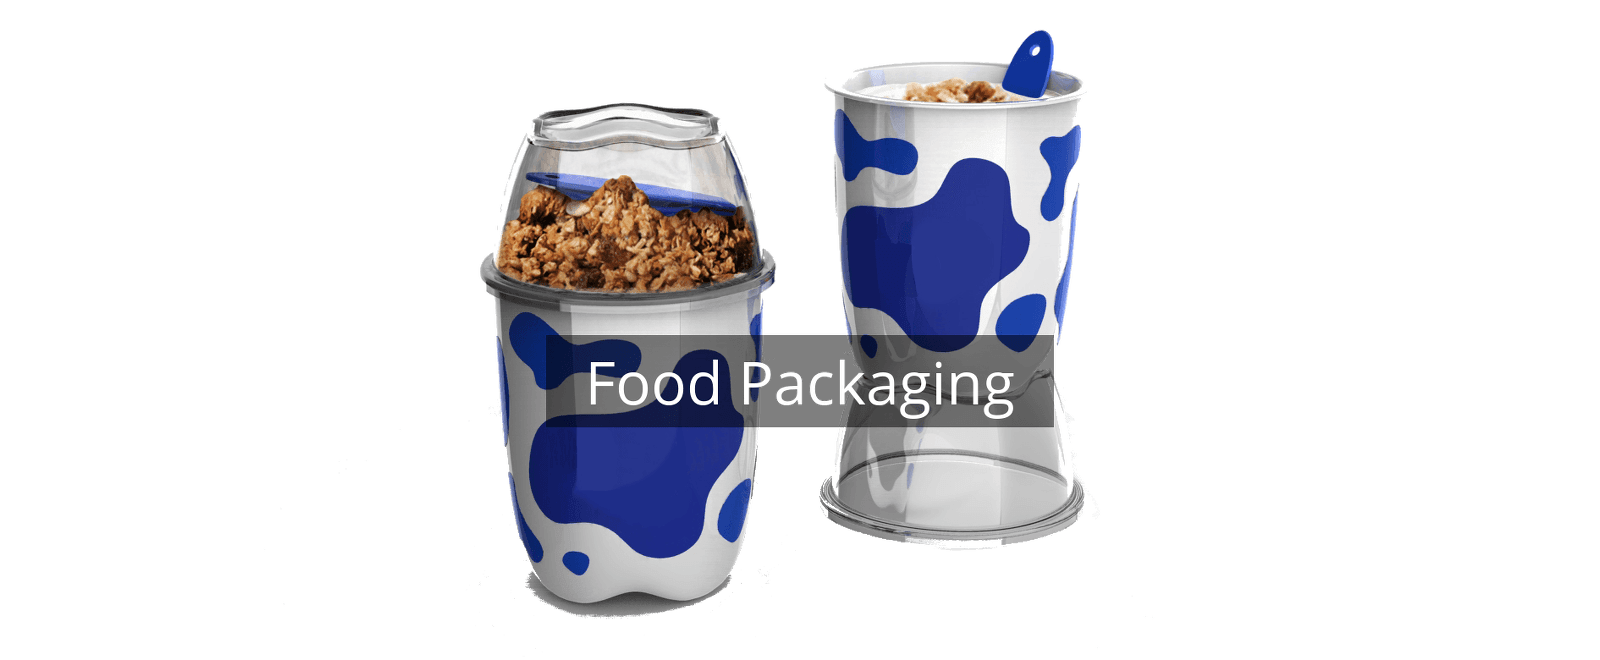 food-packaging-tag-min